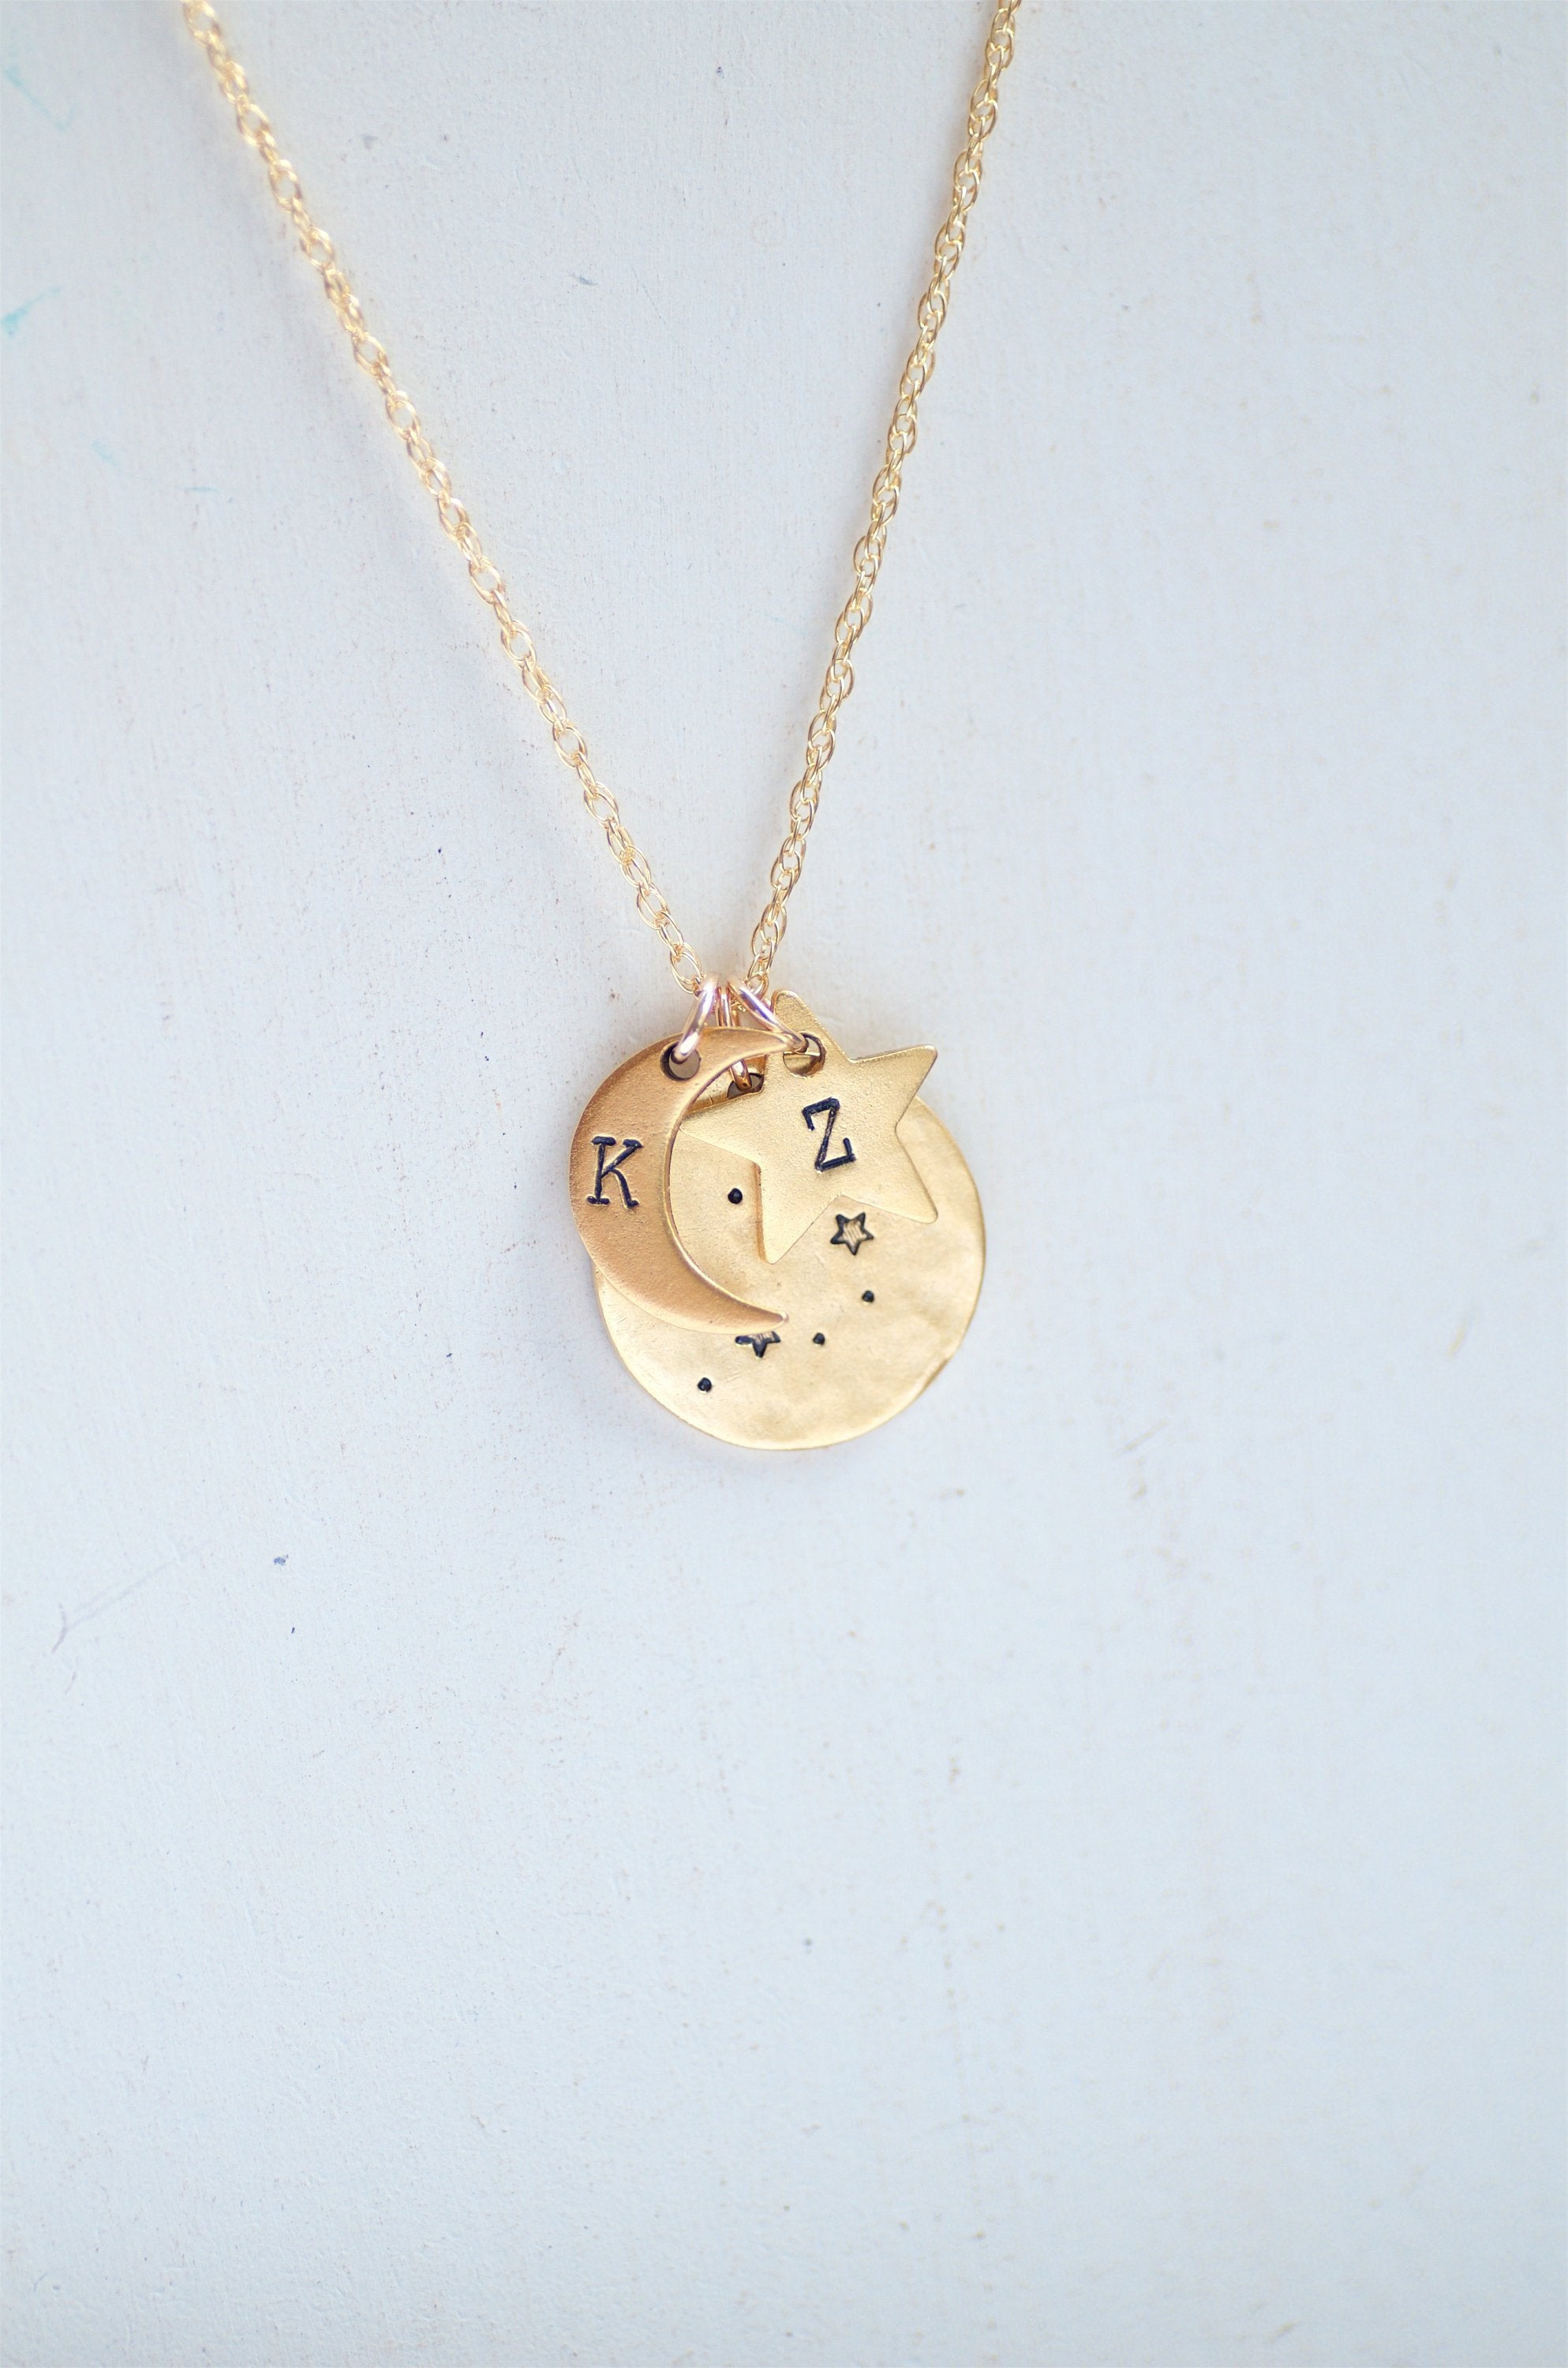 Sagittarius Zodiac Constellation Necklace by Olive Bella.  Shop now: https://olivebella.com